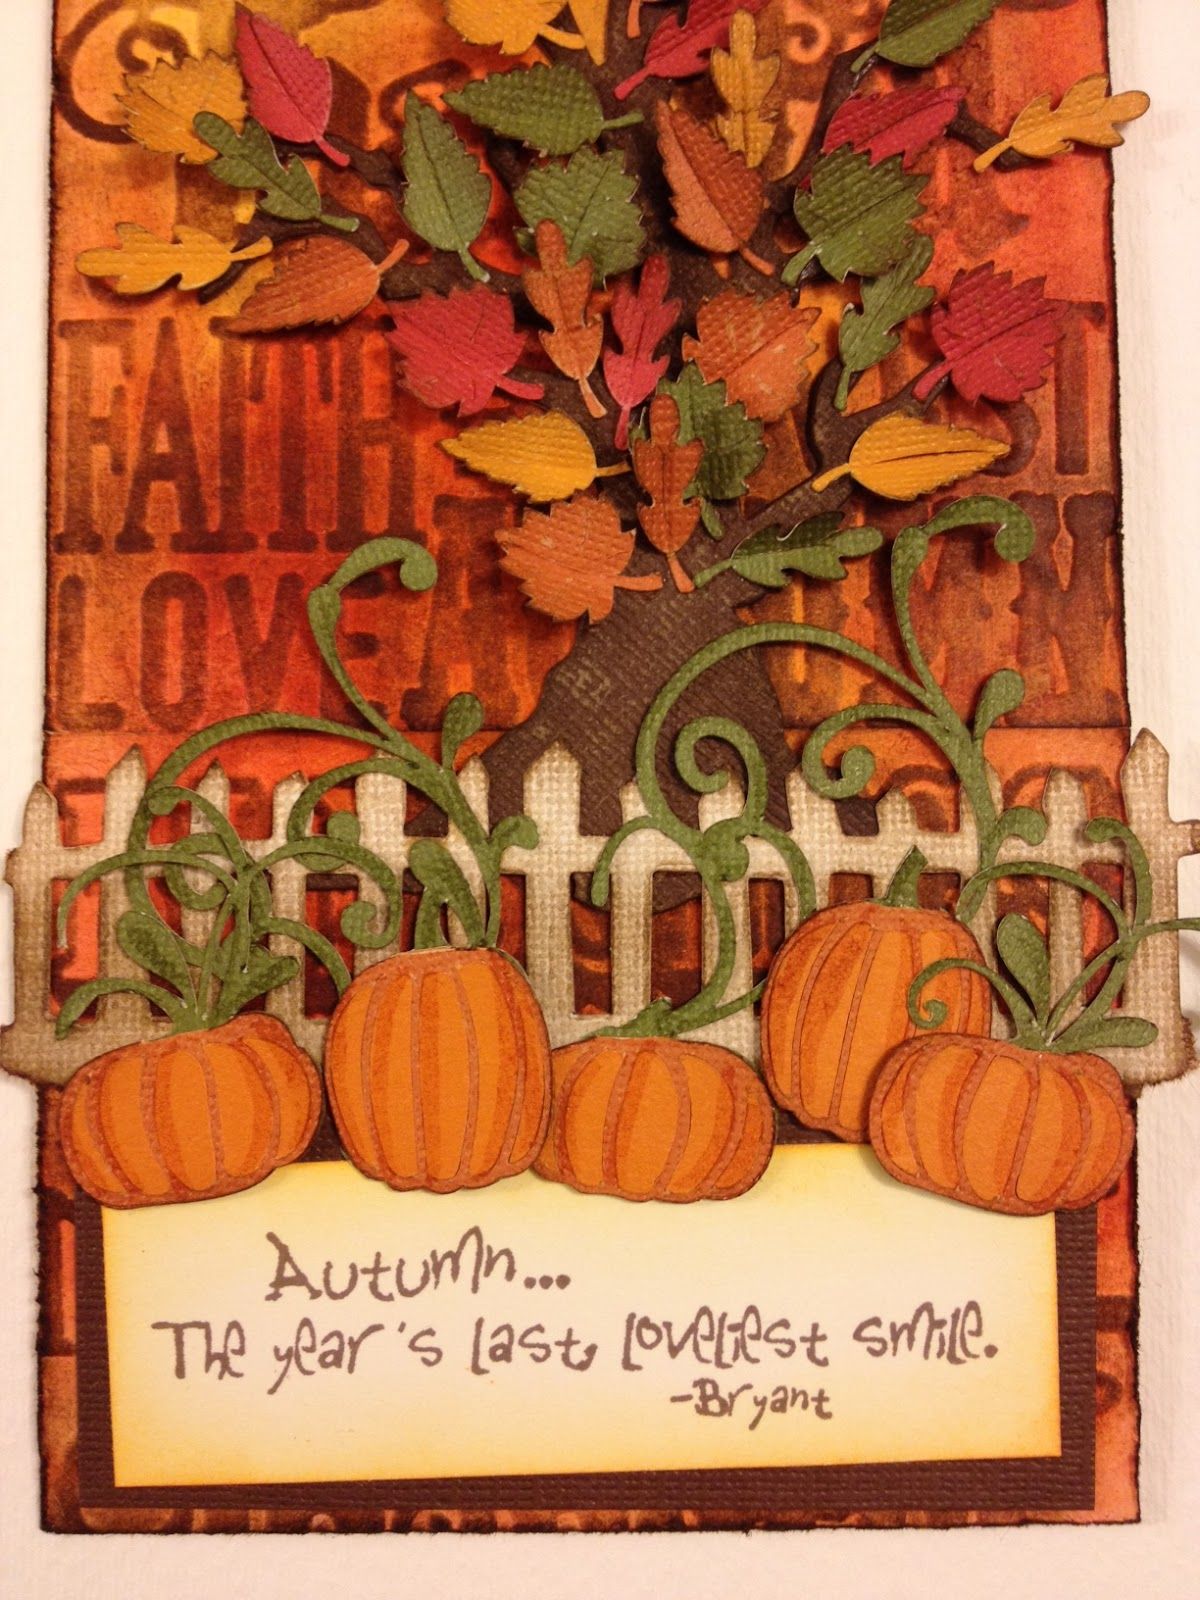 From My Art 2 Yours: Happy Fall Y'all